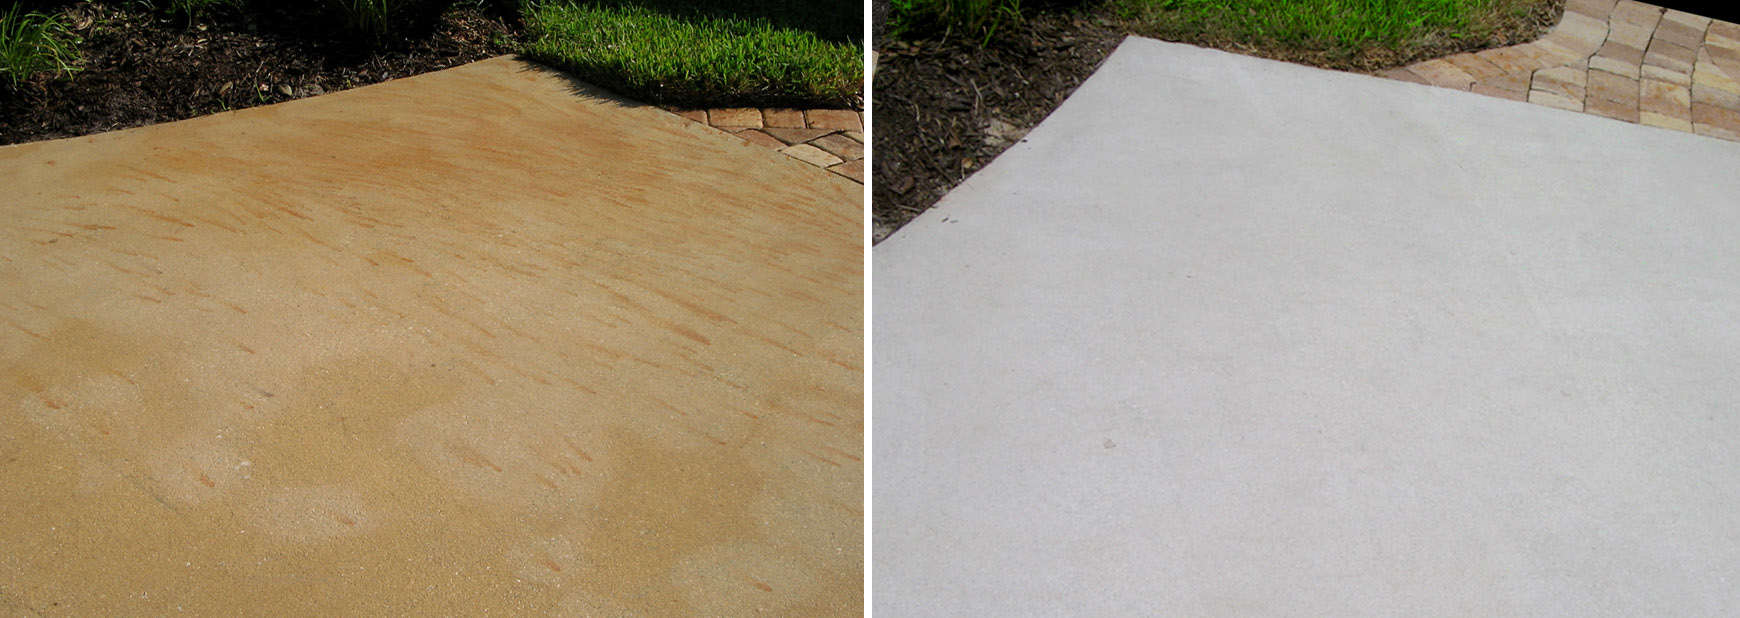 Removal of rust staining on concrete